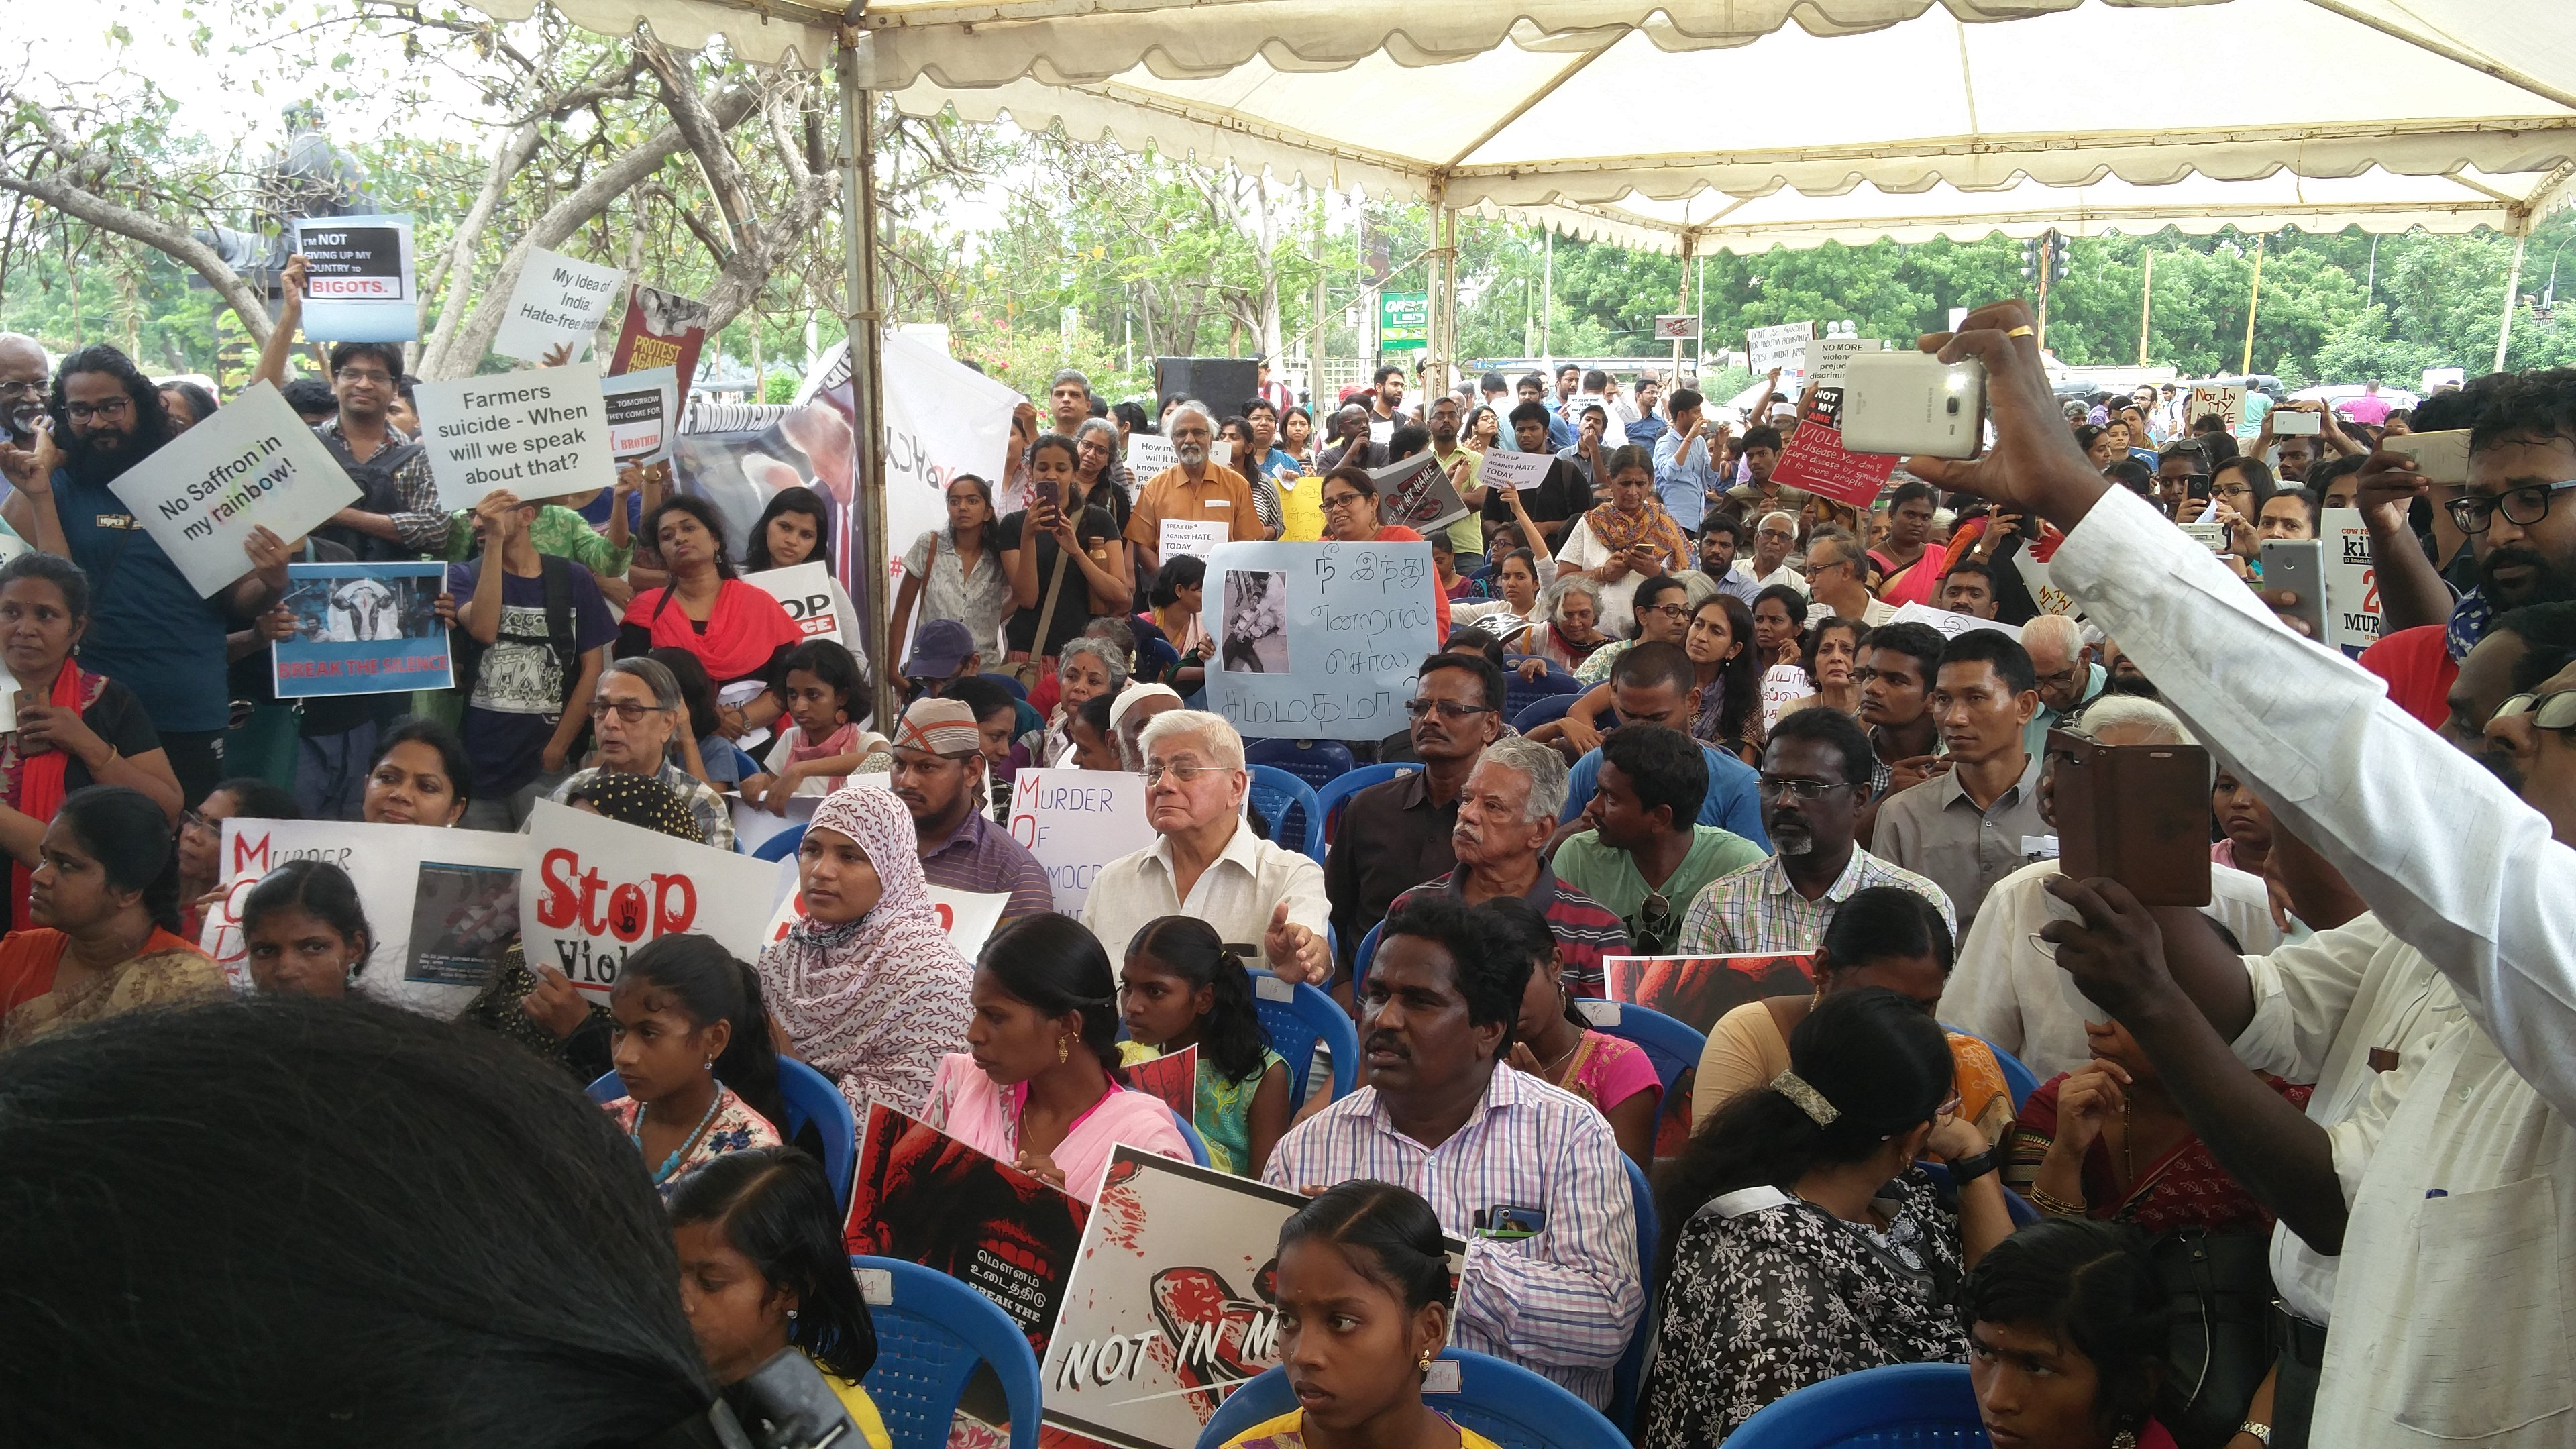 People in Chennai unite against incidents of violence across the country [Credit: Vinita Govindarajan]